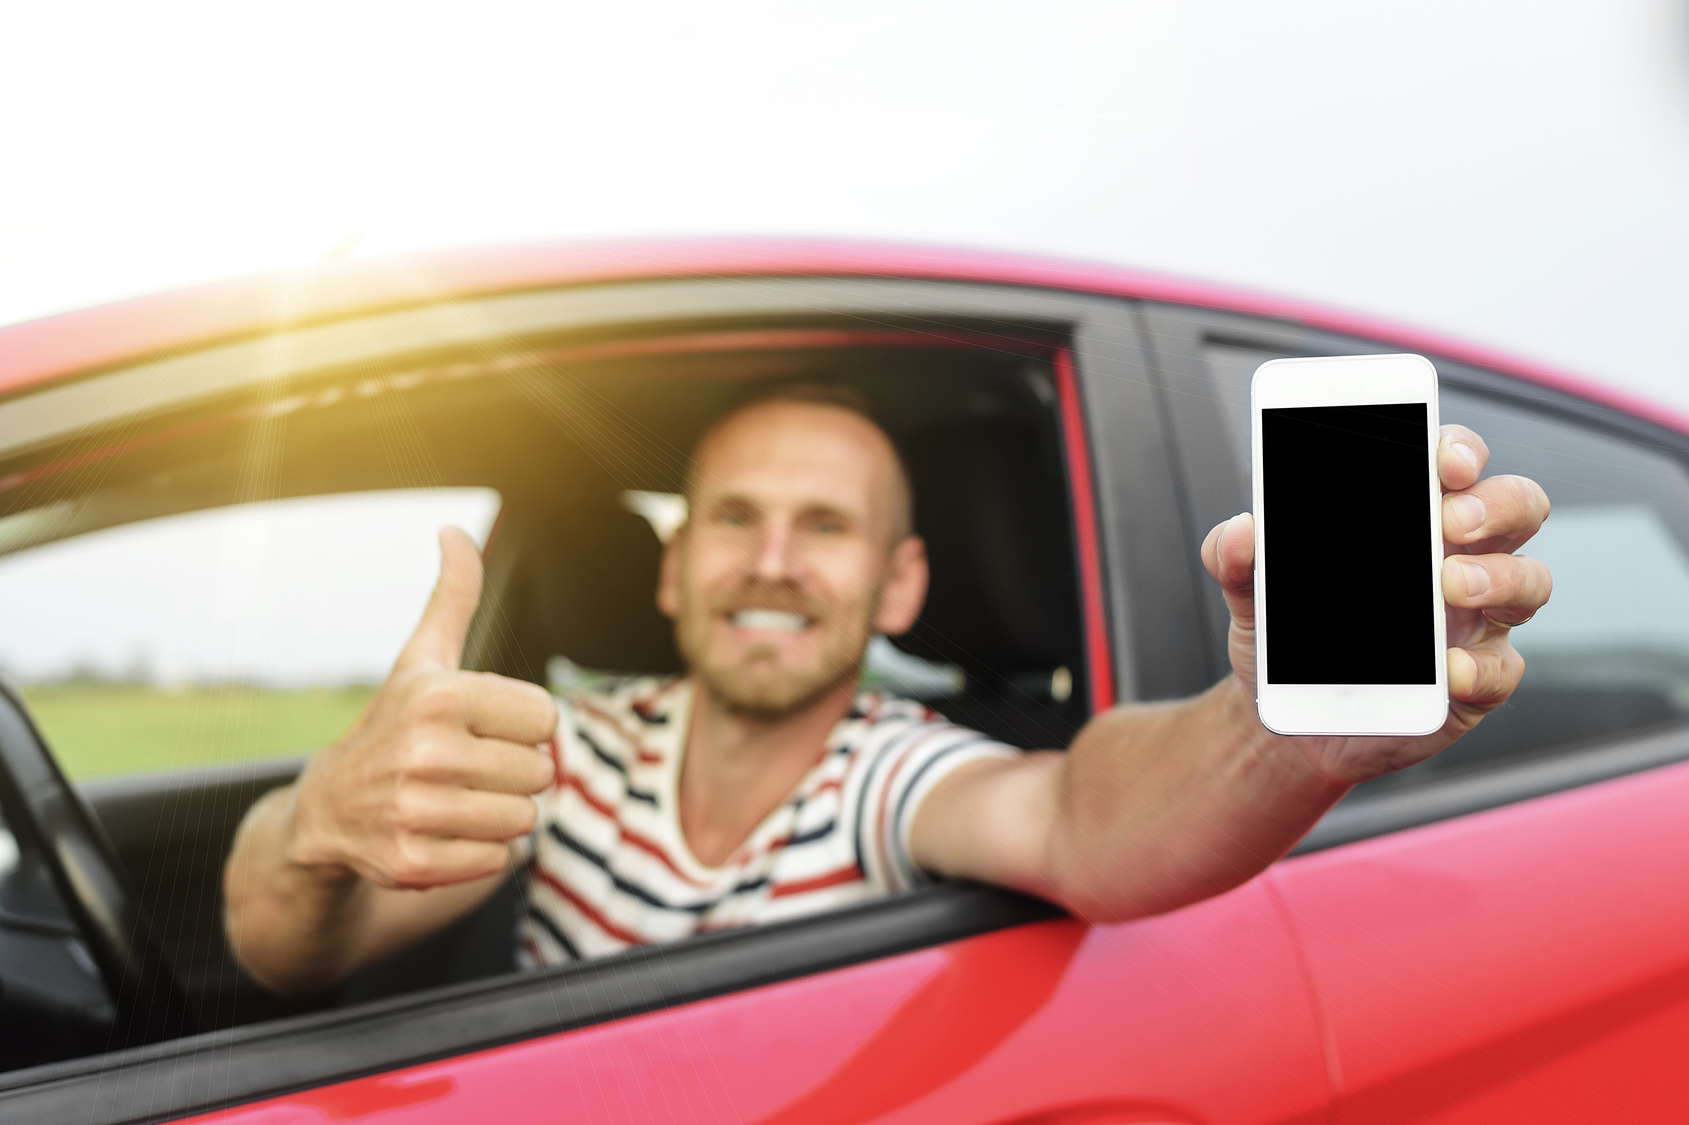 A man in a car with smartphone